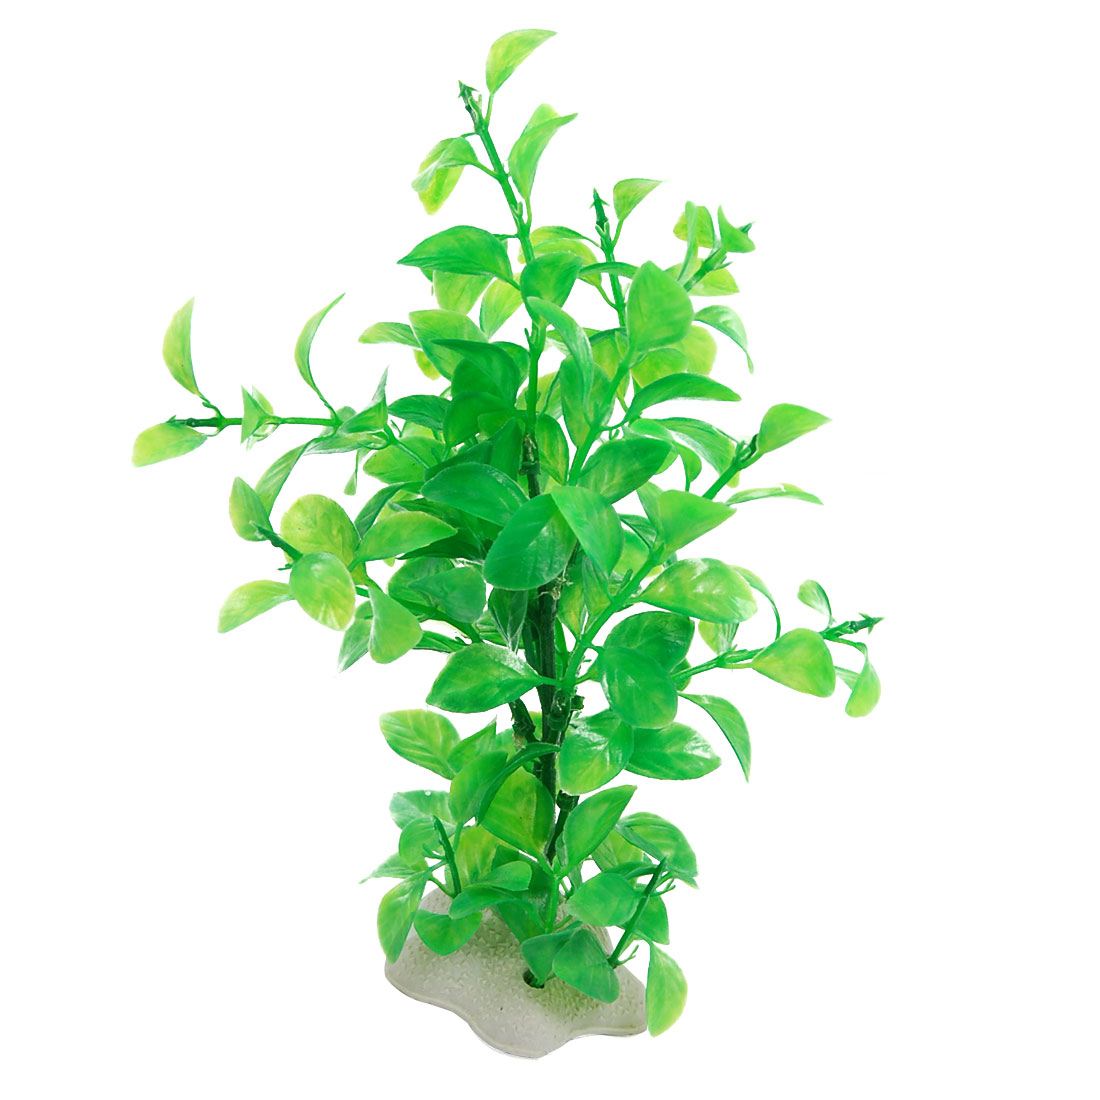 "7.8"" Height Green Plastic Elliptic Leaf Plant Decor for Aquarium"